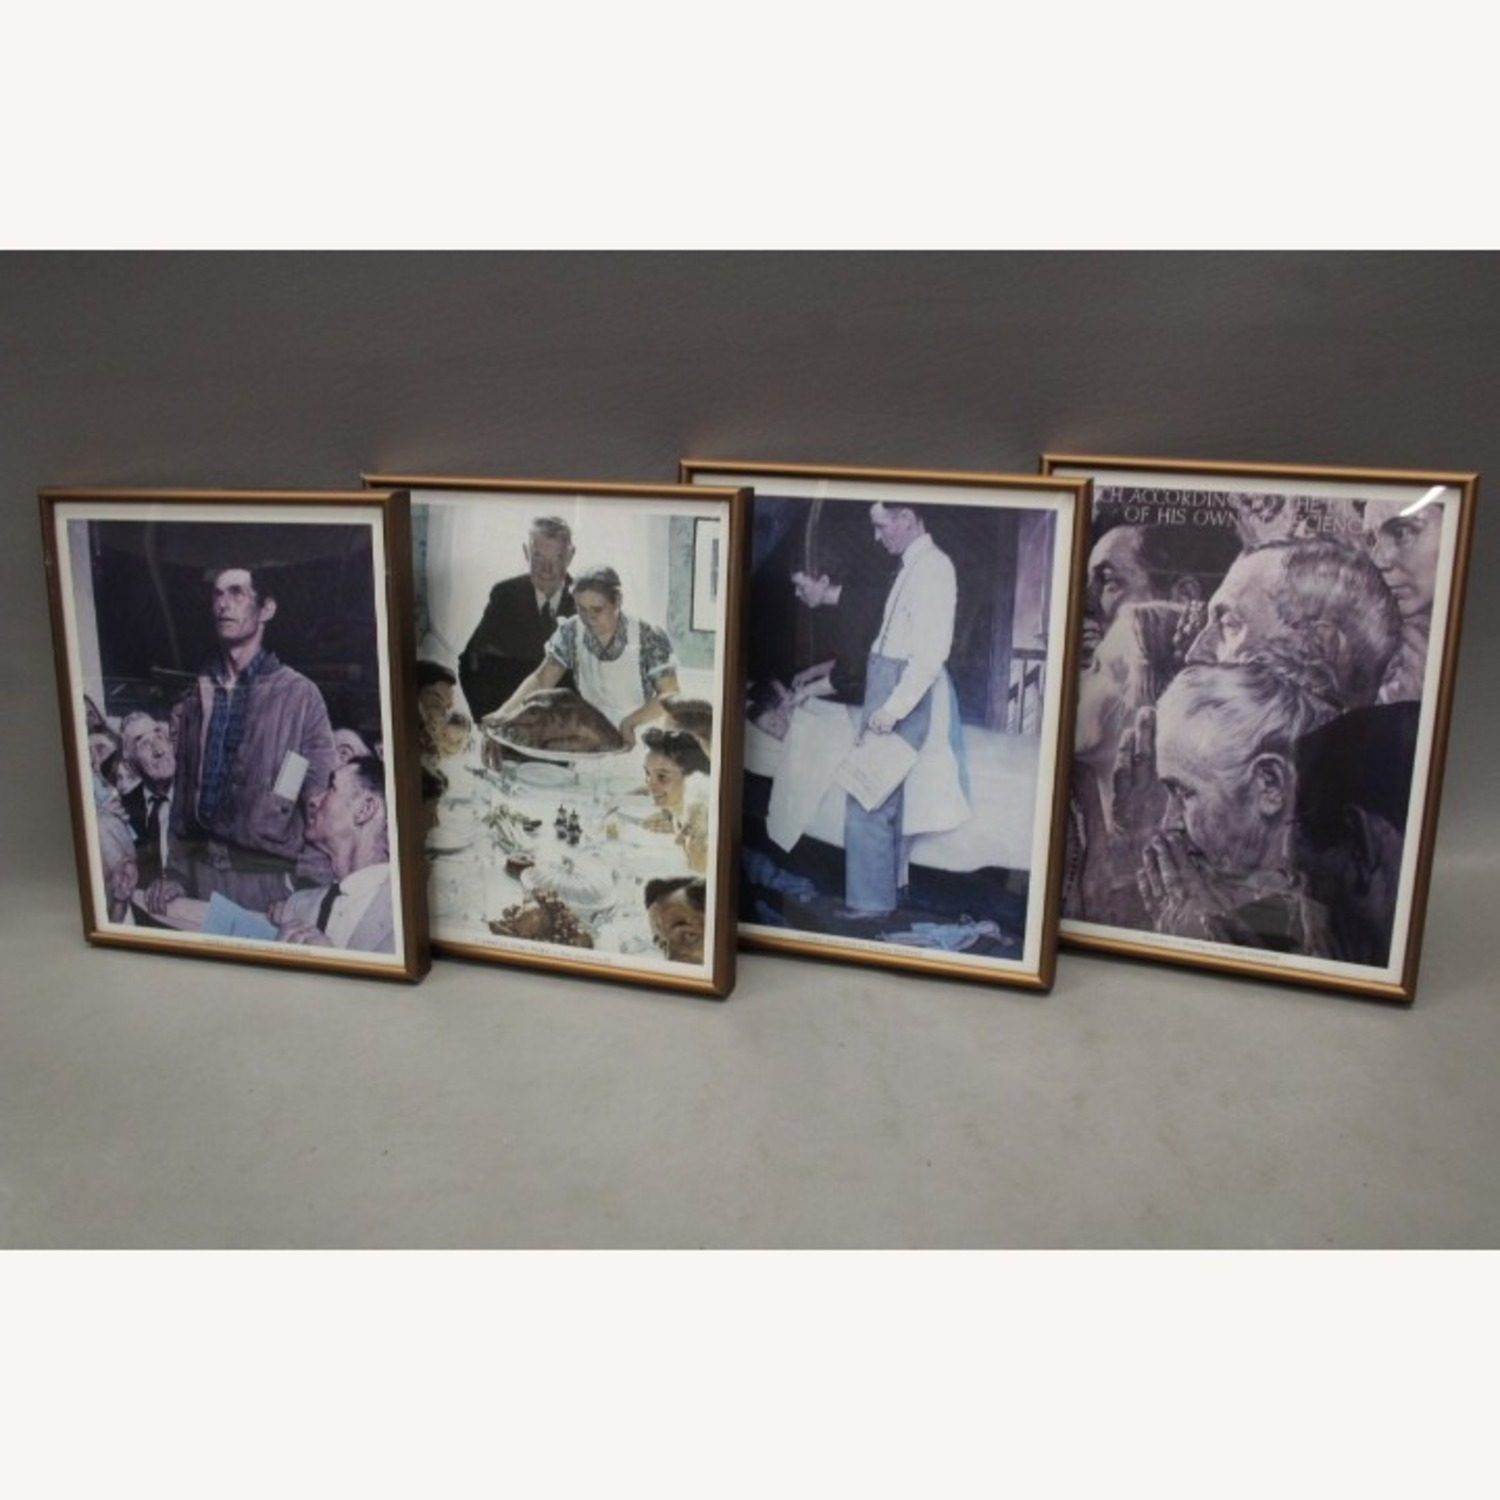 Normal Rockwell 4 Piece Wall Art - image-1